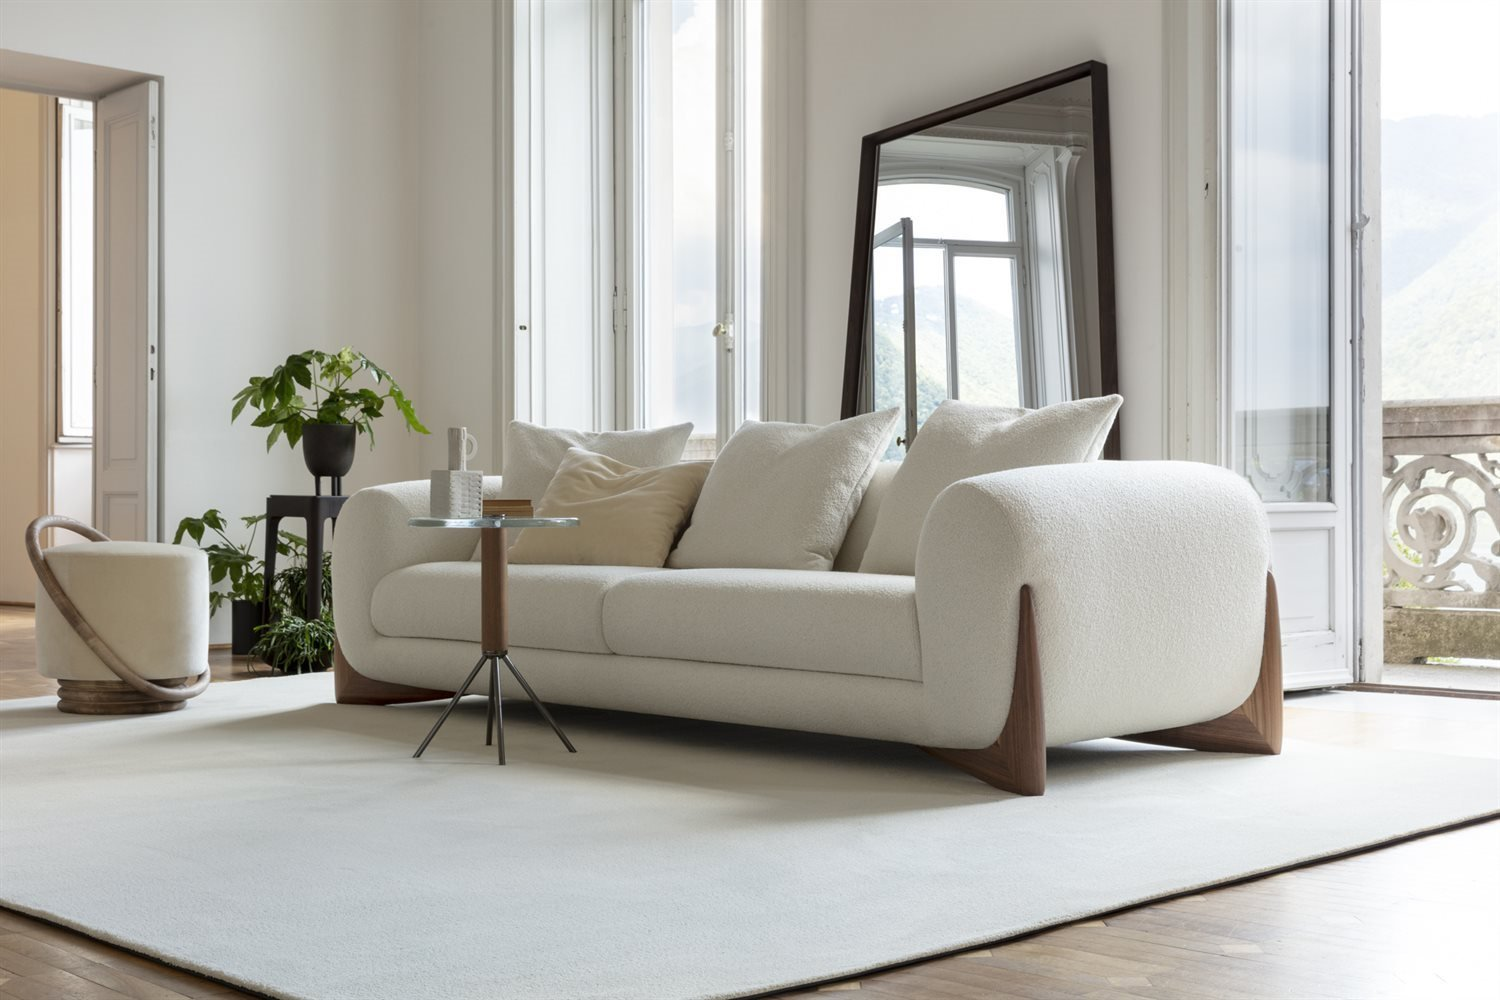 Softbay Sofa from Porada, designed by G. Vigano